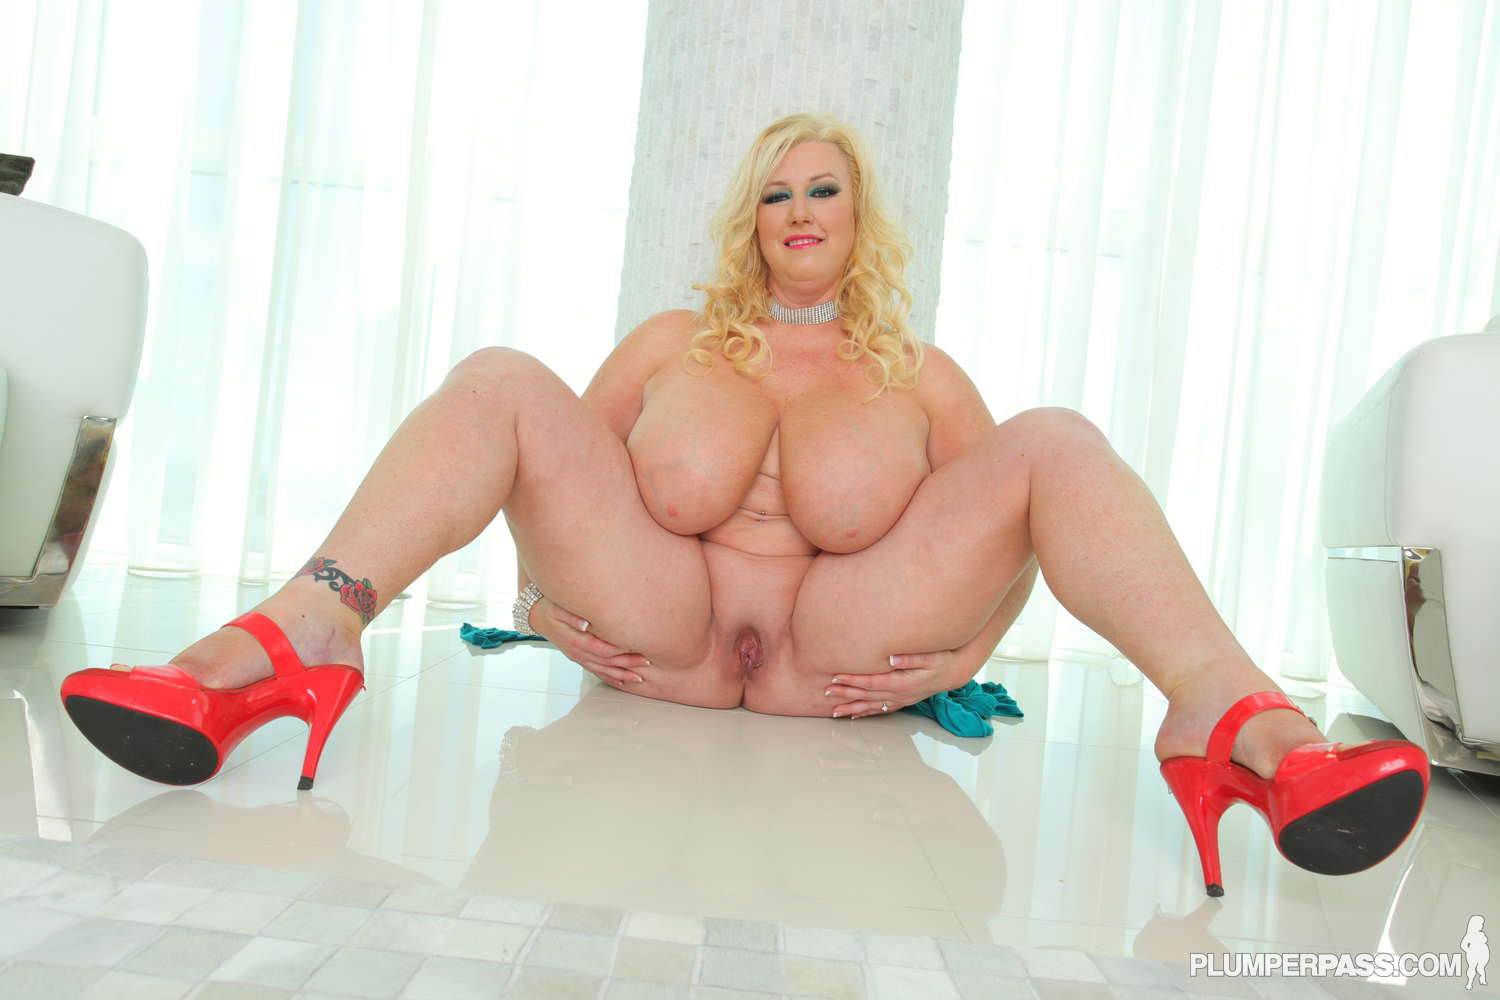 Bbw zoey andrews on the prowl 1